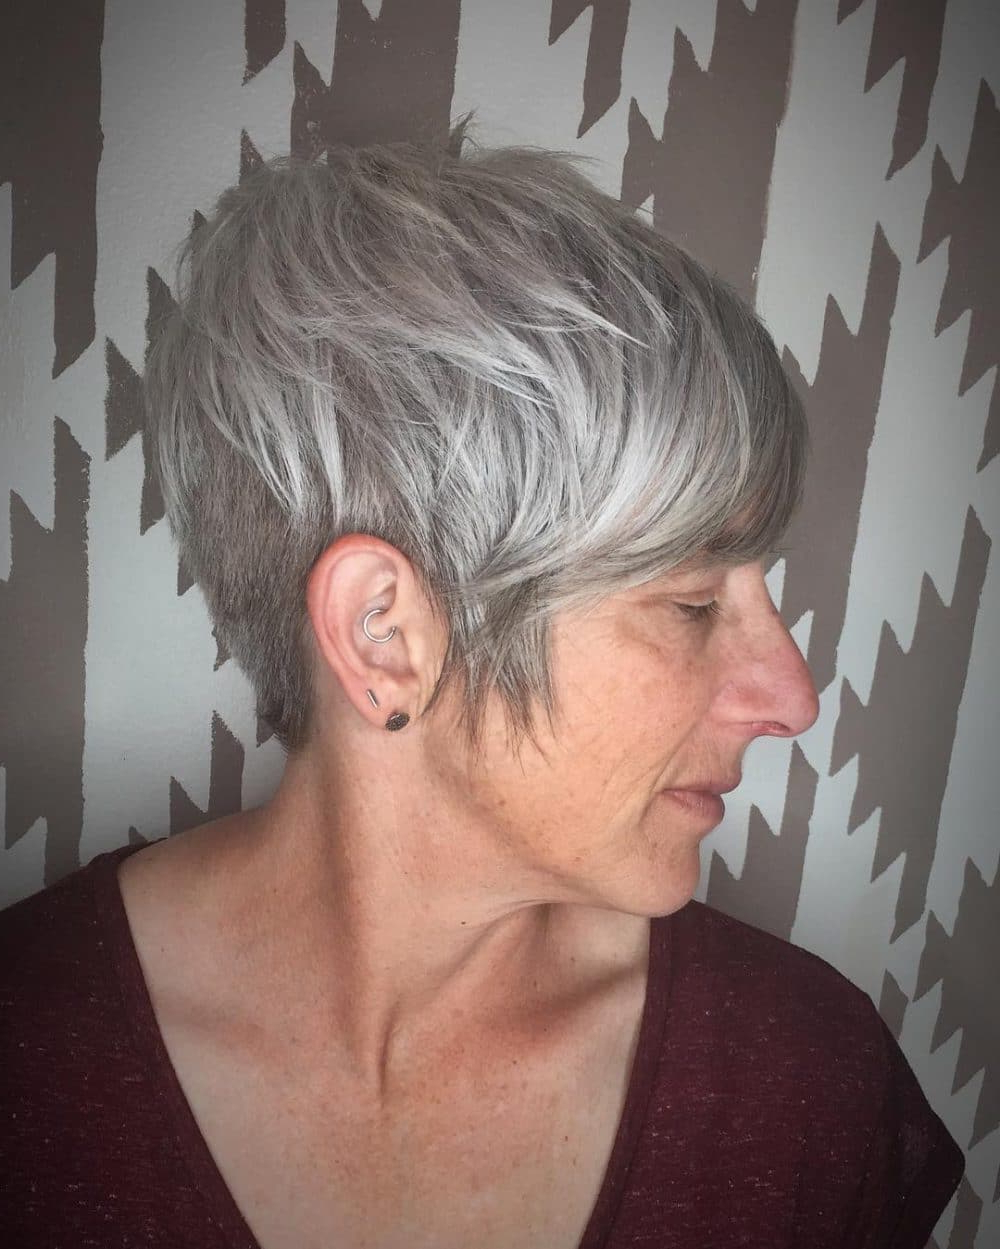 Latest Edgy Look Pixie Haircuts With Sass Throughout 43 Youthful Short Hairstyles For Women Over 50 In (View 14 of 20)